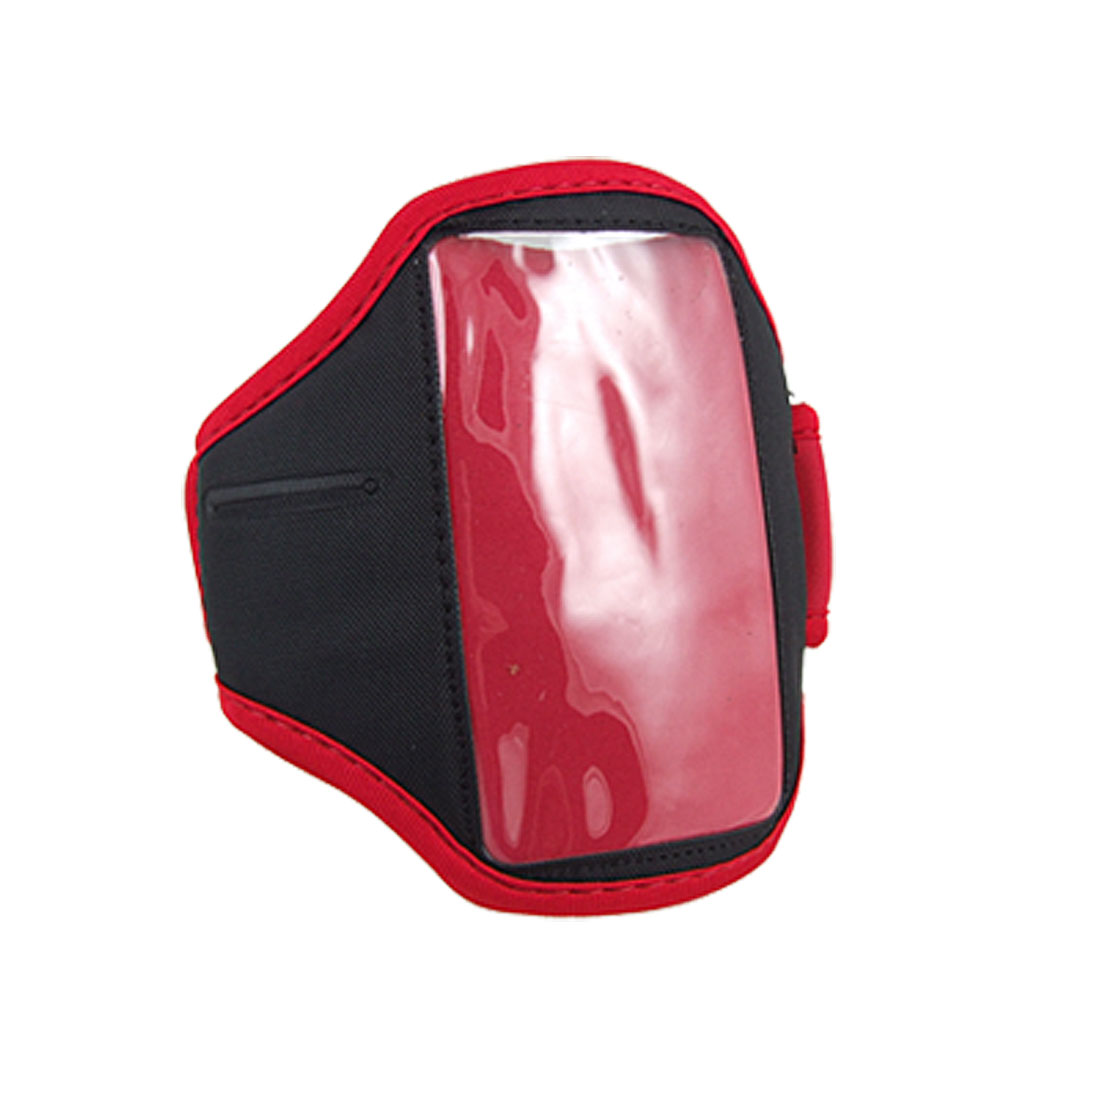 Detachable Black Red Armband for iPod Touch 4G